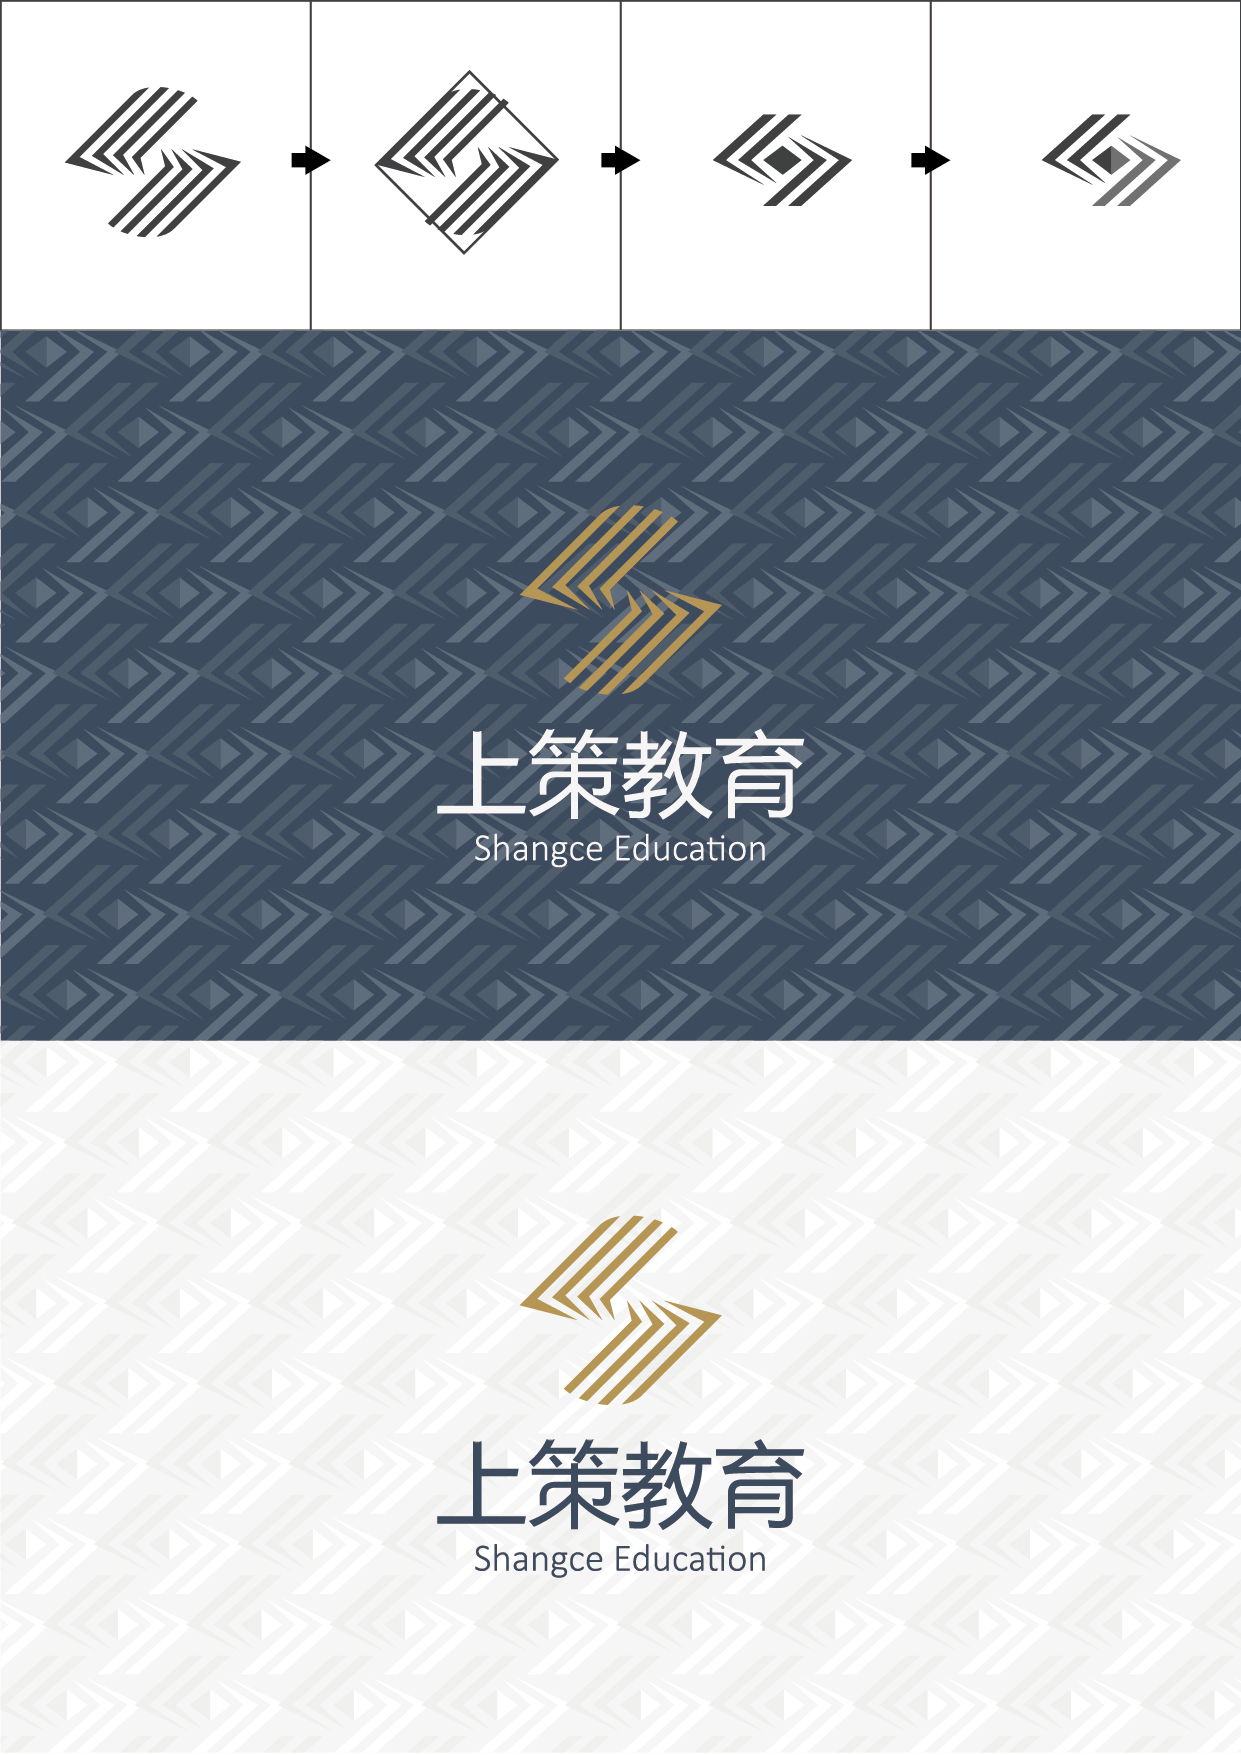 留学Logo - Adobe Photoshop, Adobe Illustrator - graphic-design, portfolio, logo-vi